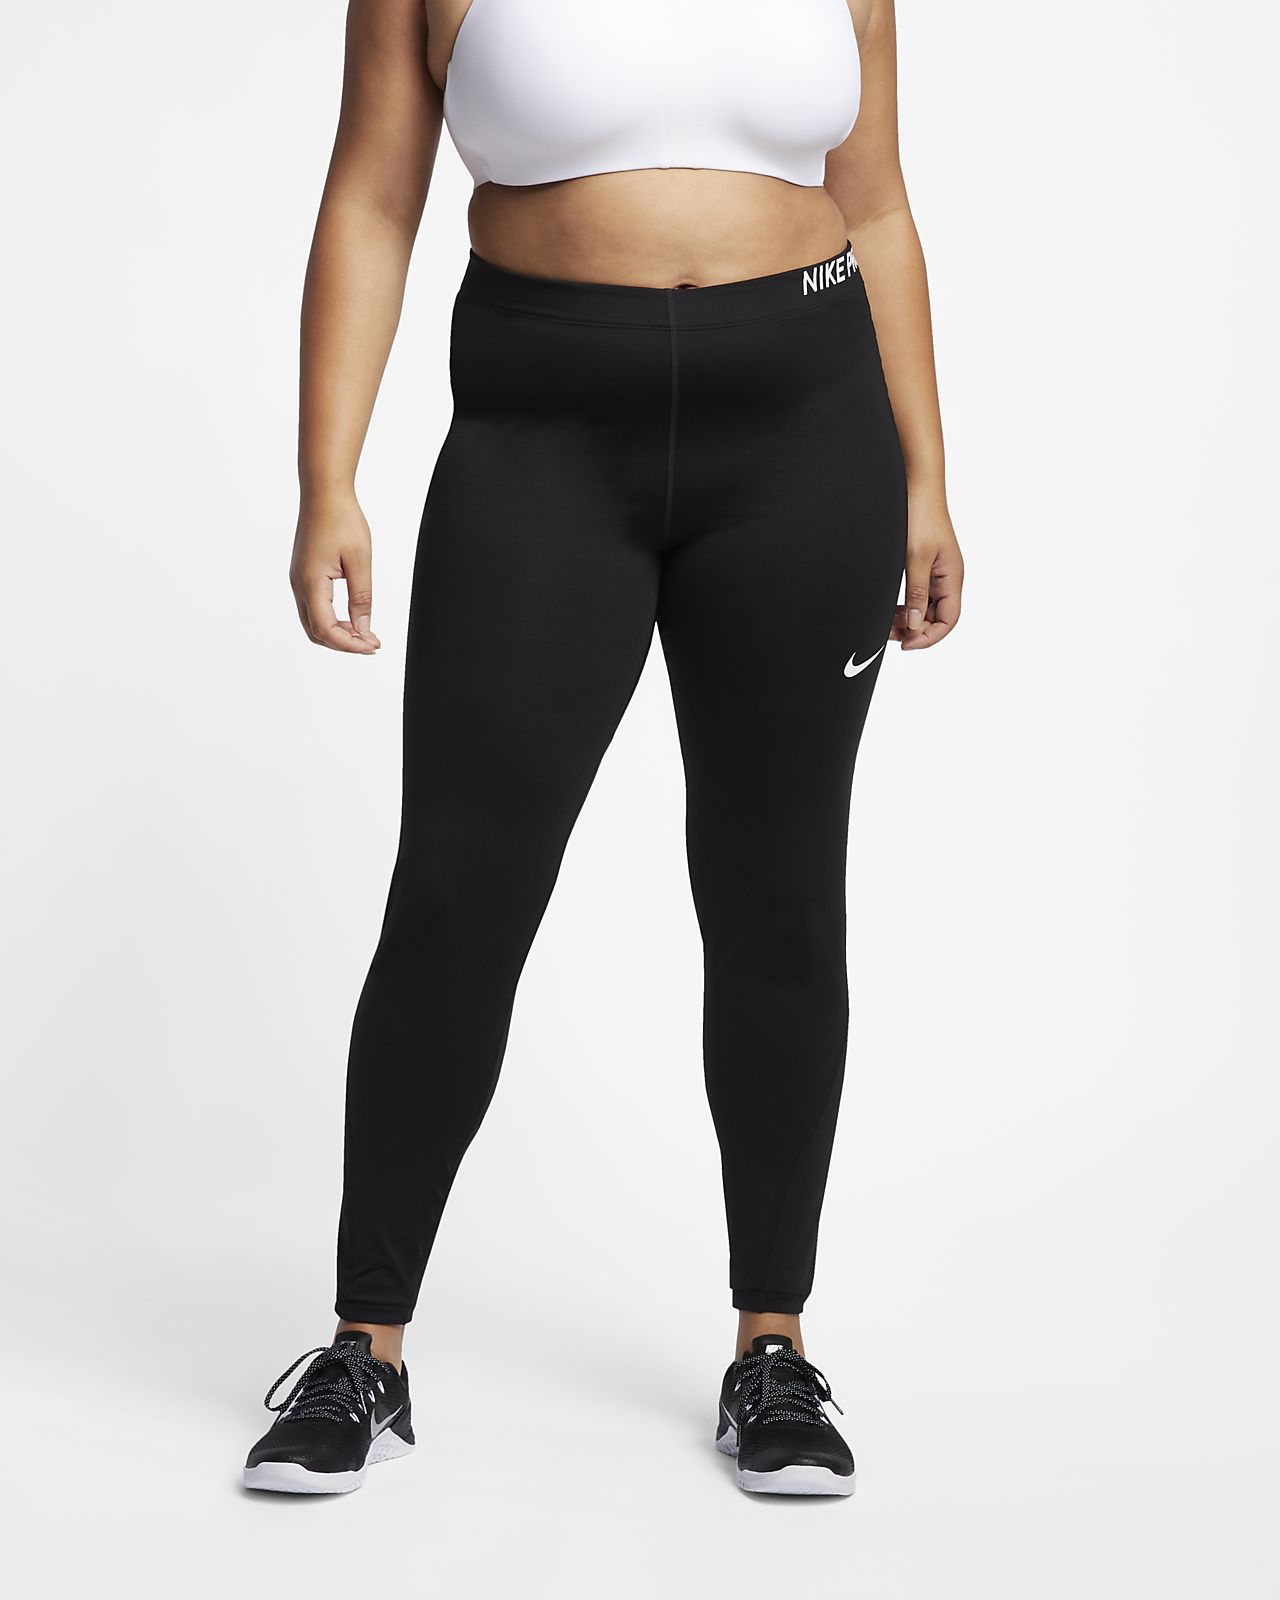 6bbcec1f7c Nike Pro Women s Mid-Rise Training Tights (Plus Size). Nike.com GB